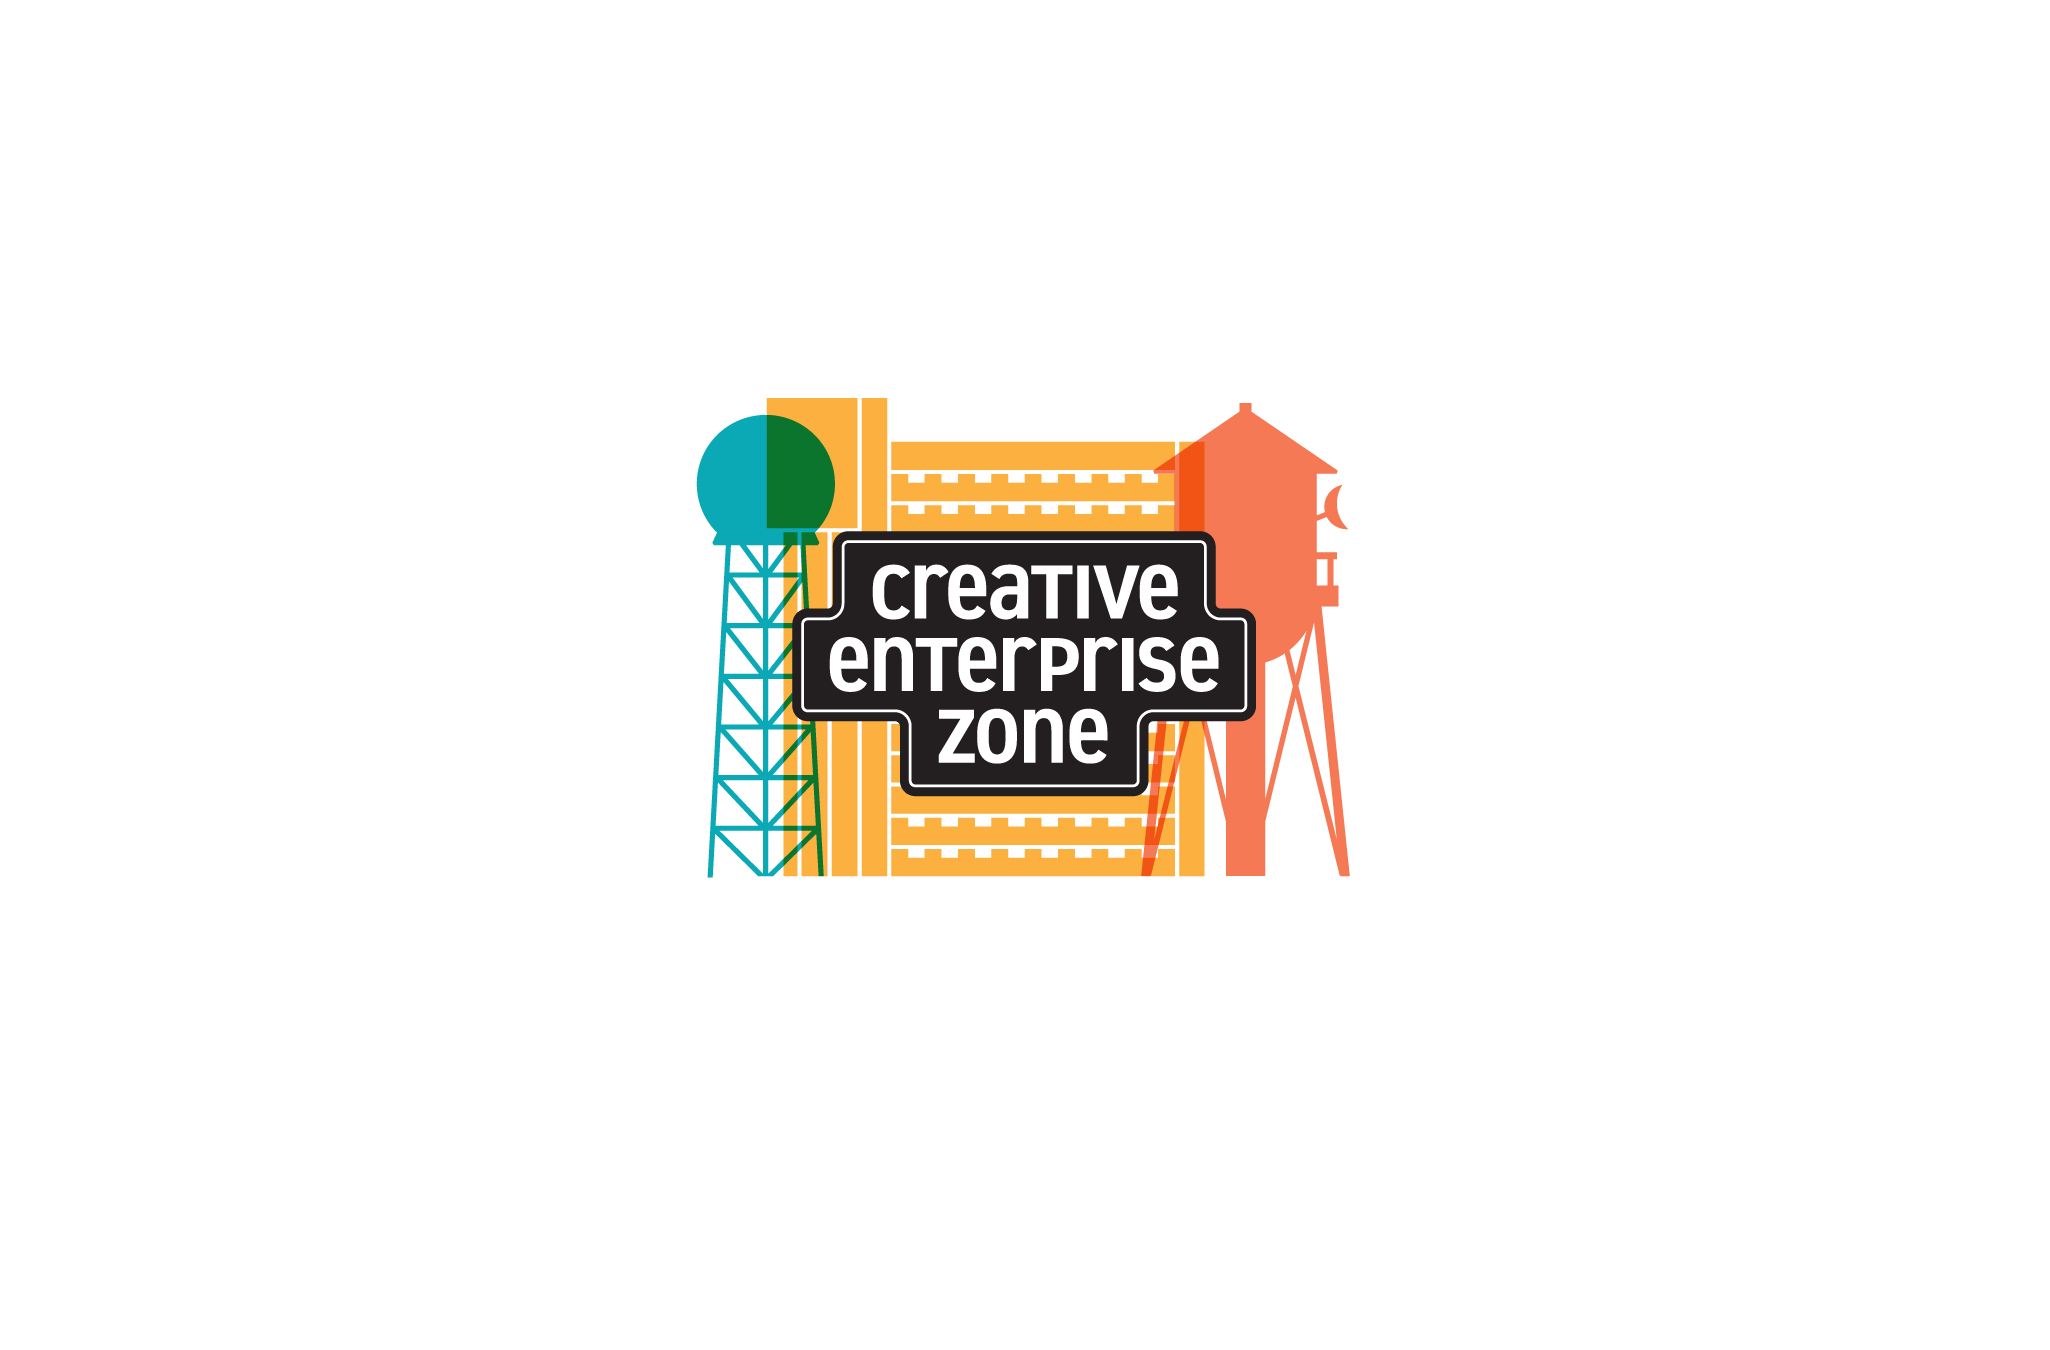 Creative Enterprise Zone logo